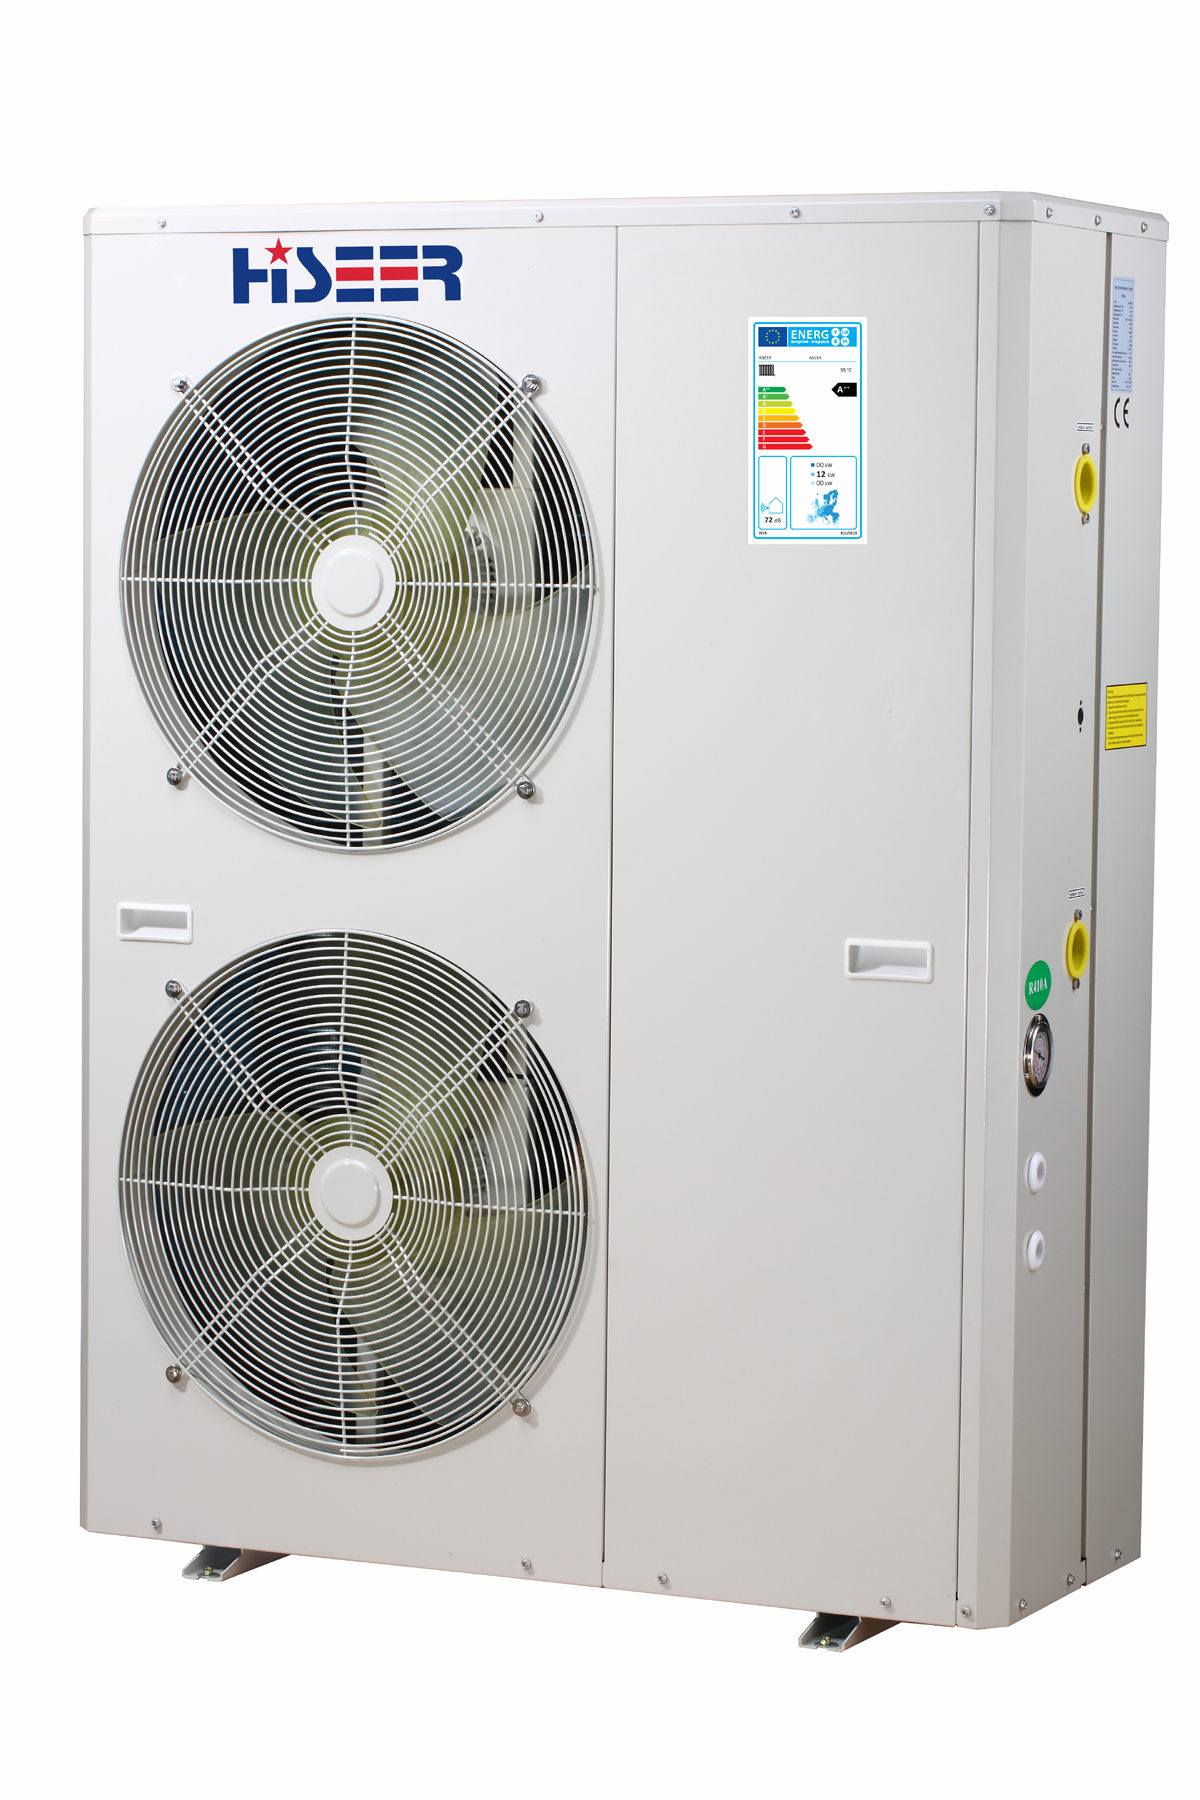 #ACA01F Air To Water Heat Pump Heating And Cooling Unit AS20B  Recommended 6927 Unit Heating And Cooling pics with 1200x1800 px on helpvideos.info - Air Conditioners, Air Coolers and more